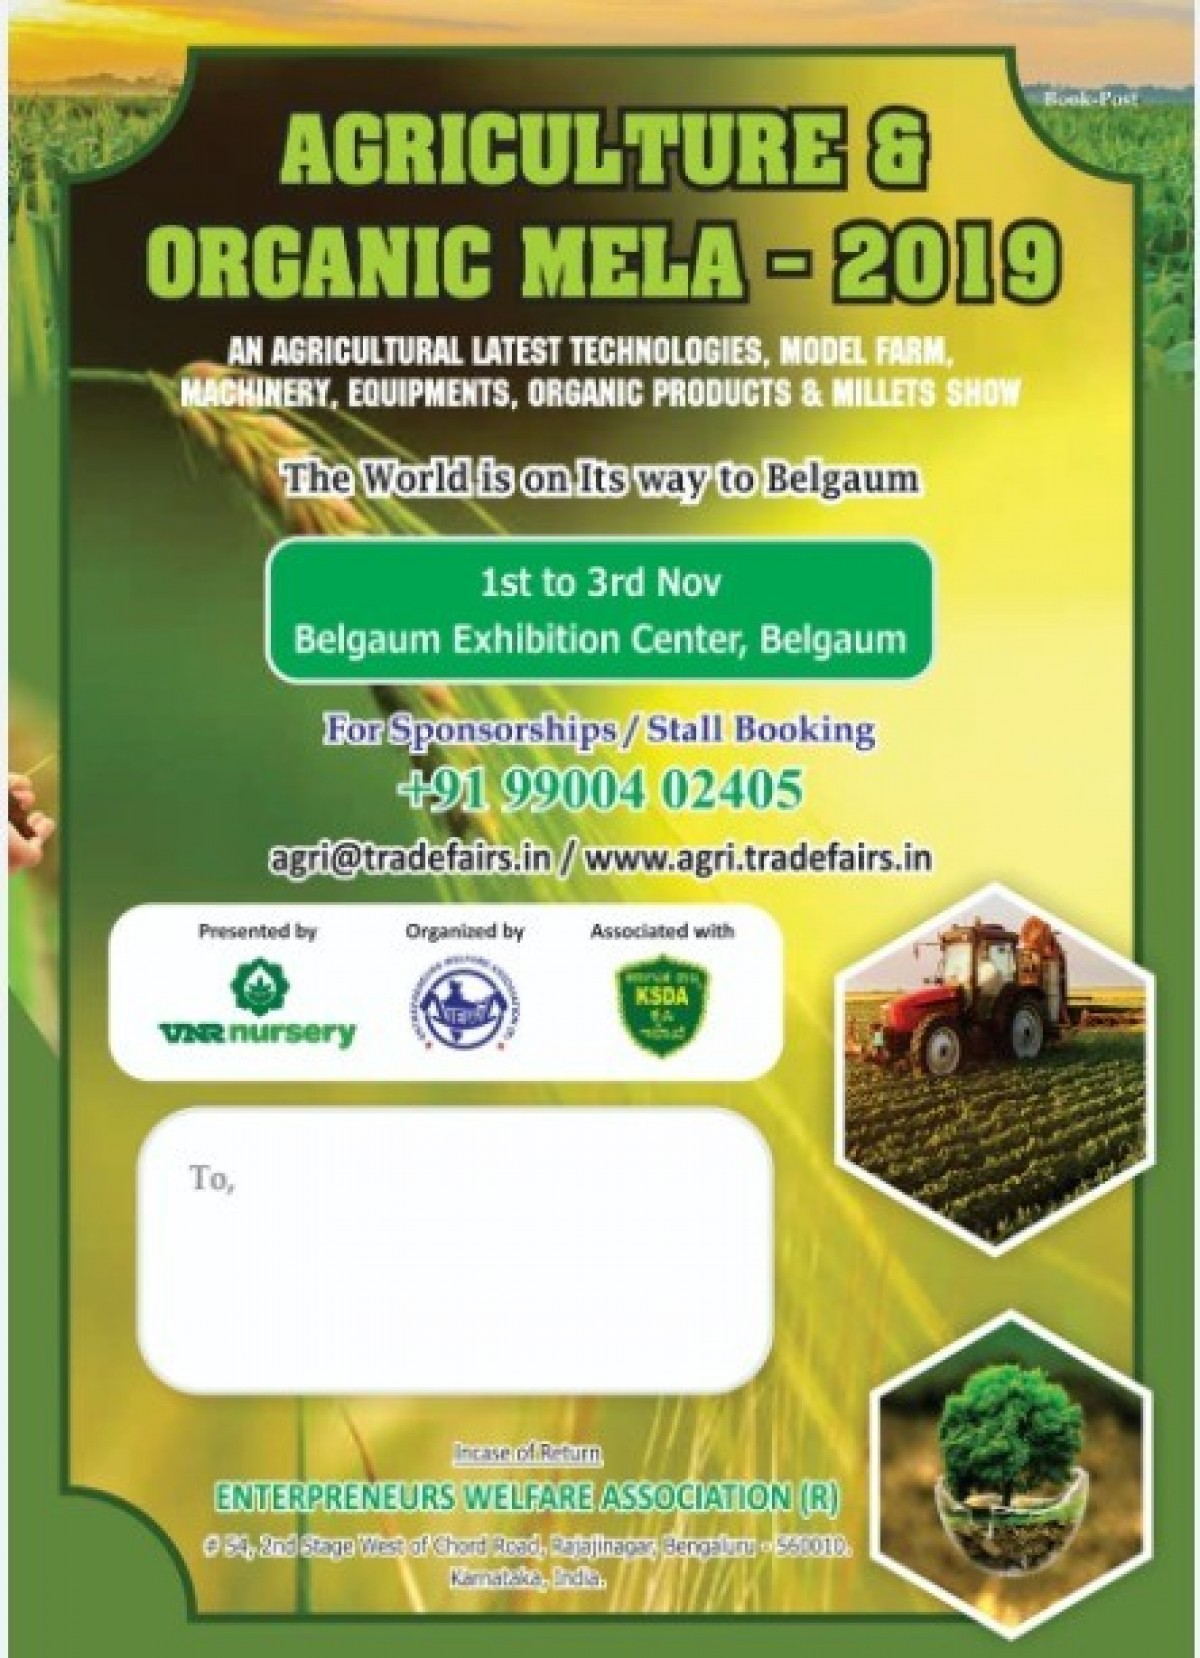 Agriculture & Organic Mela 2019 @ Belgaum Exhibition Center